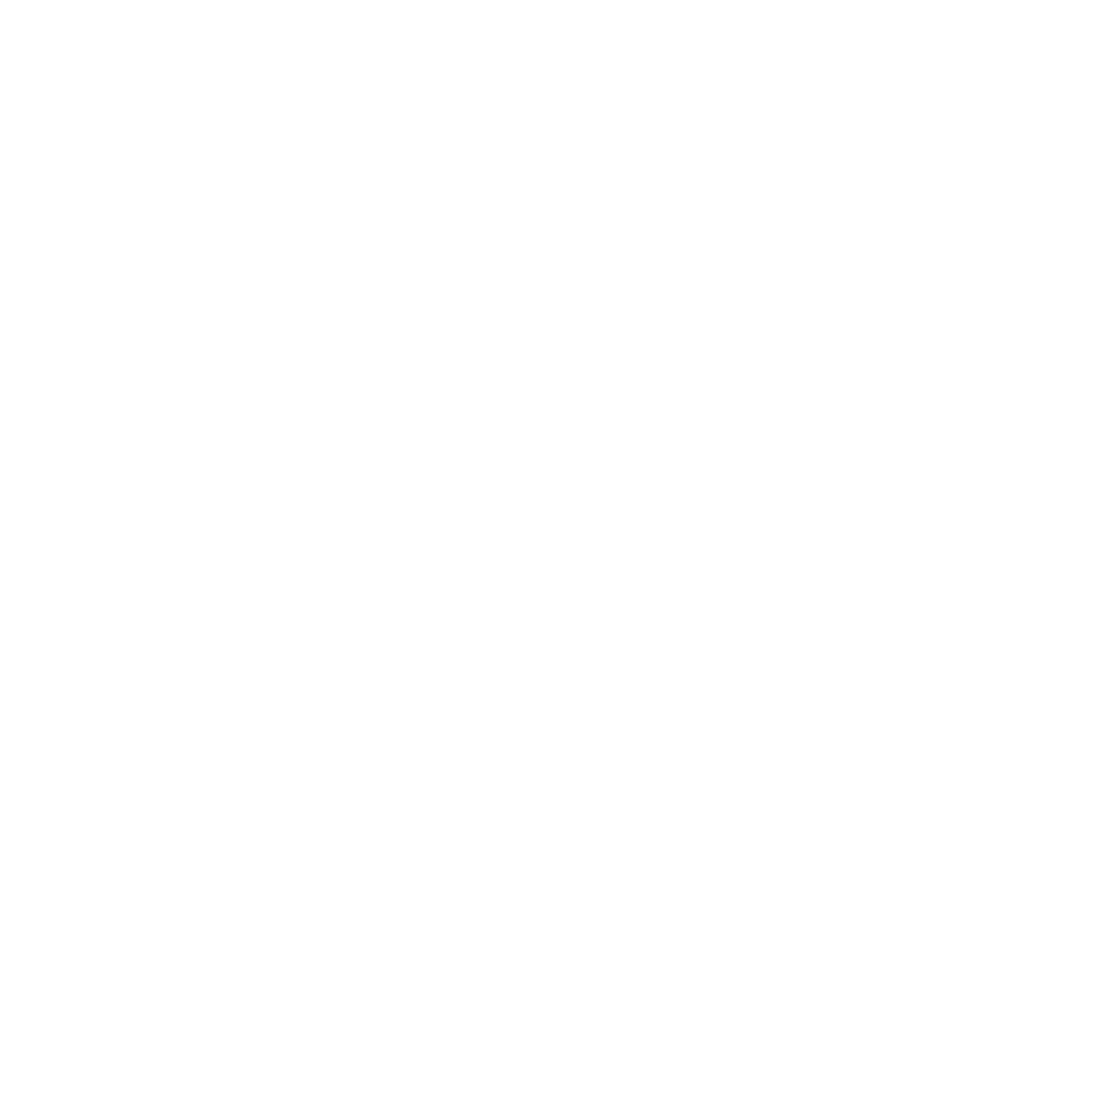 Rolla Cycling